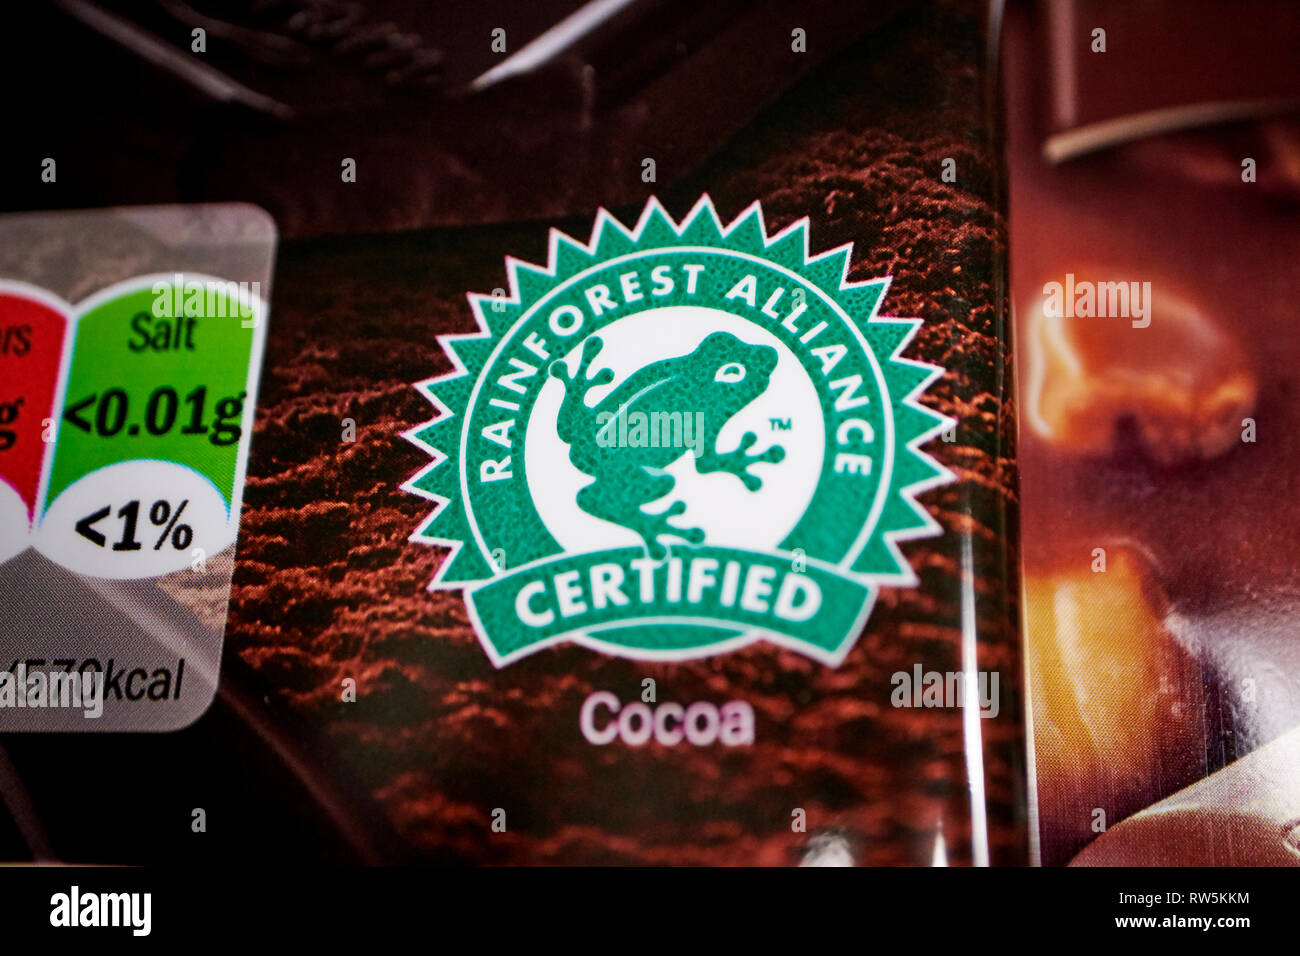 rainforest alliance certified cocoa label on a bar of chocolate - Stock Image